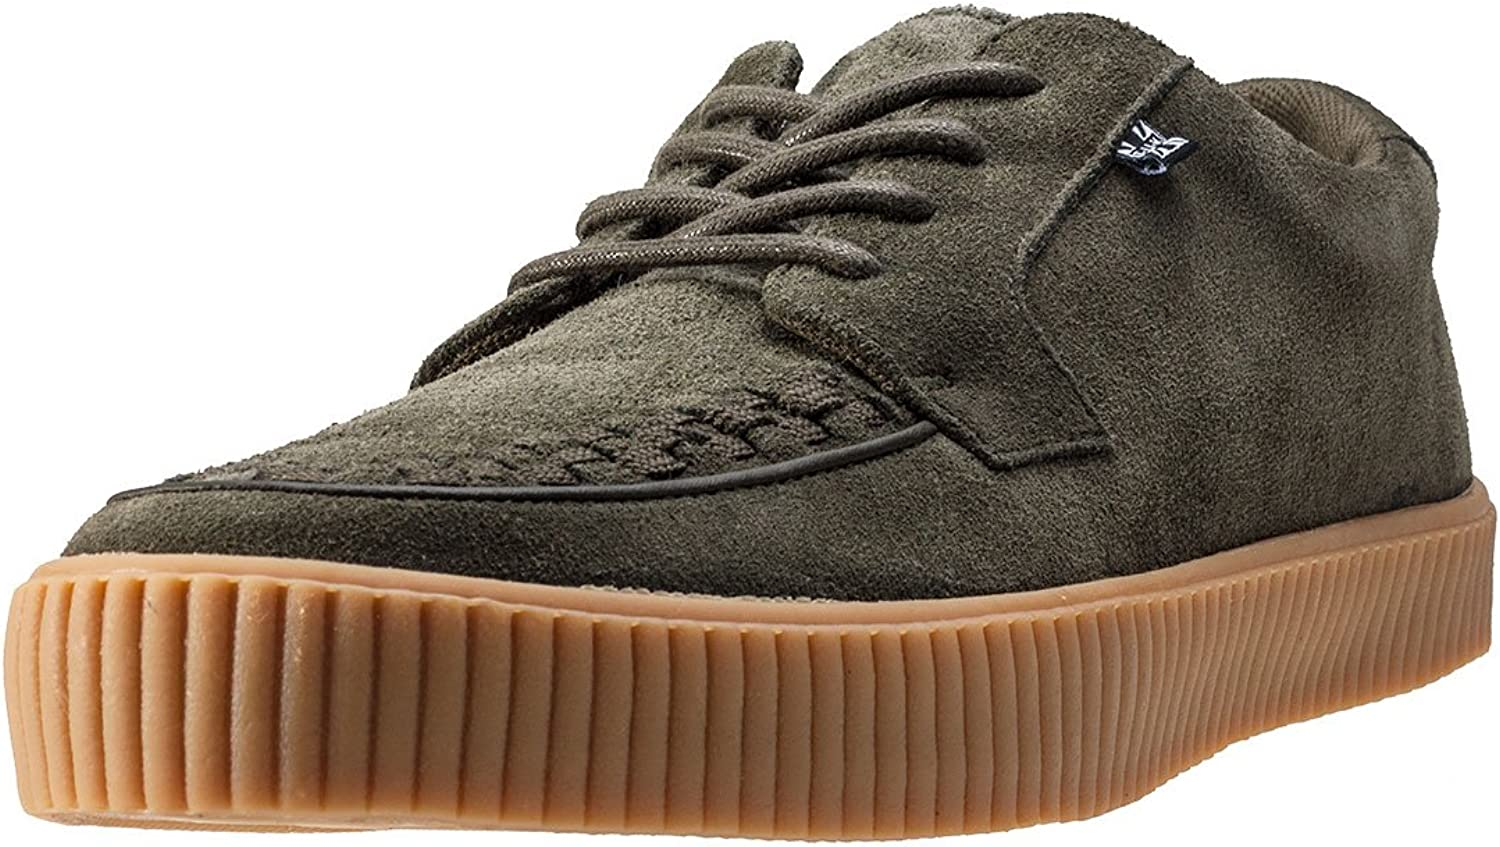 T.U.K. shoes A9255 Unisex-Adult Creepers, Olive Suede EZC shoes